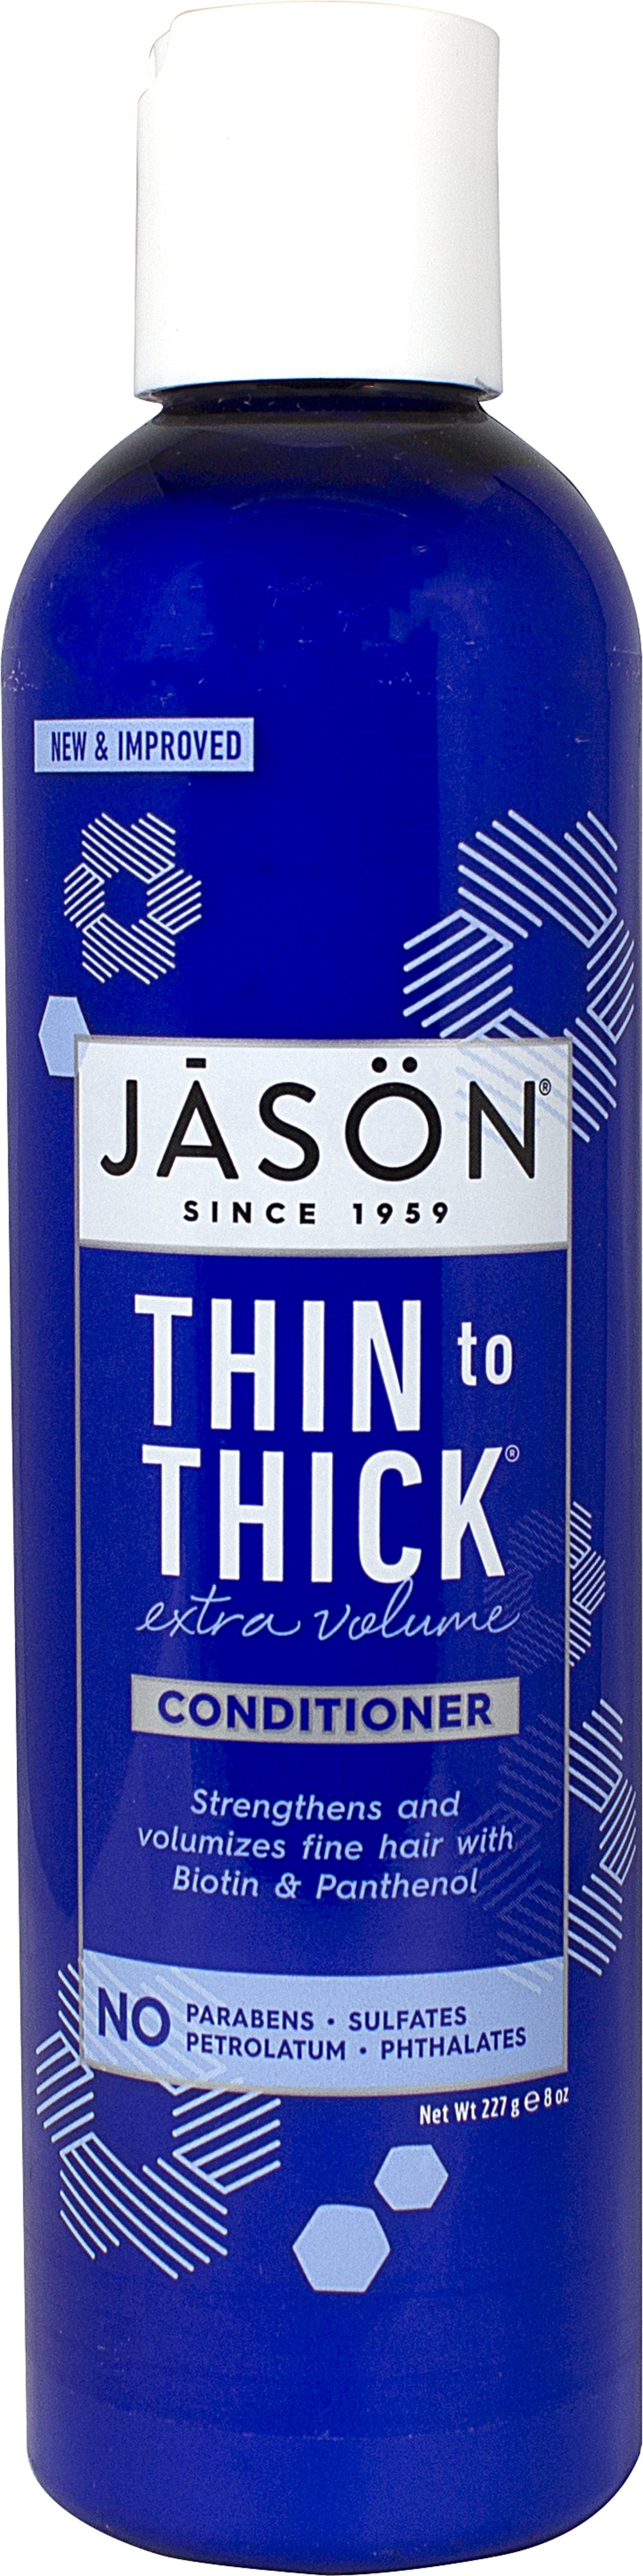 Jason® Thin To Thick® Conditioner  8 oz Conditioner  $9.99